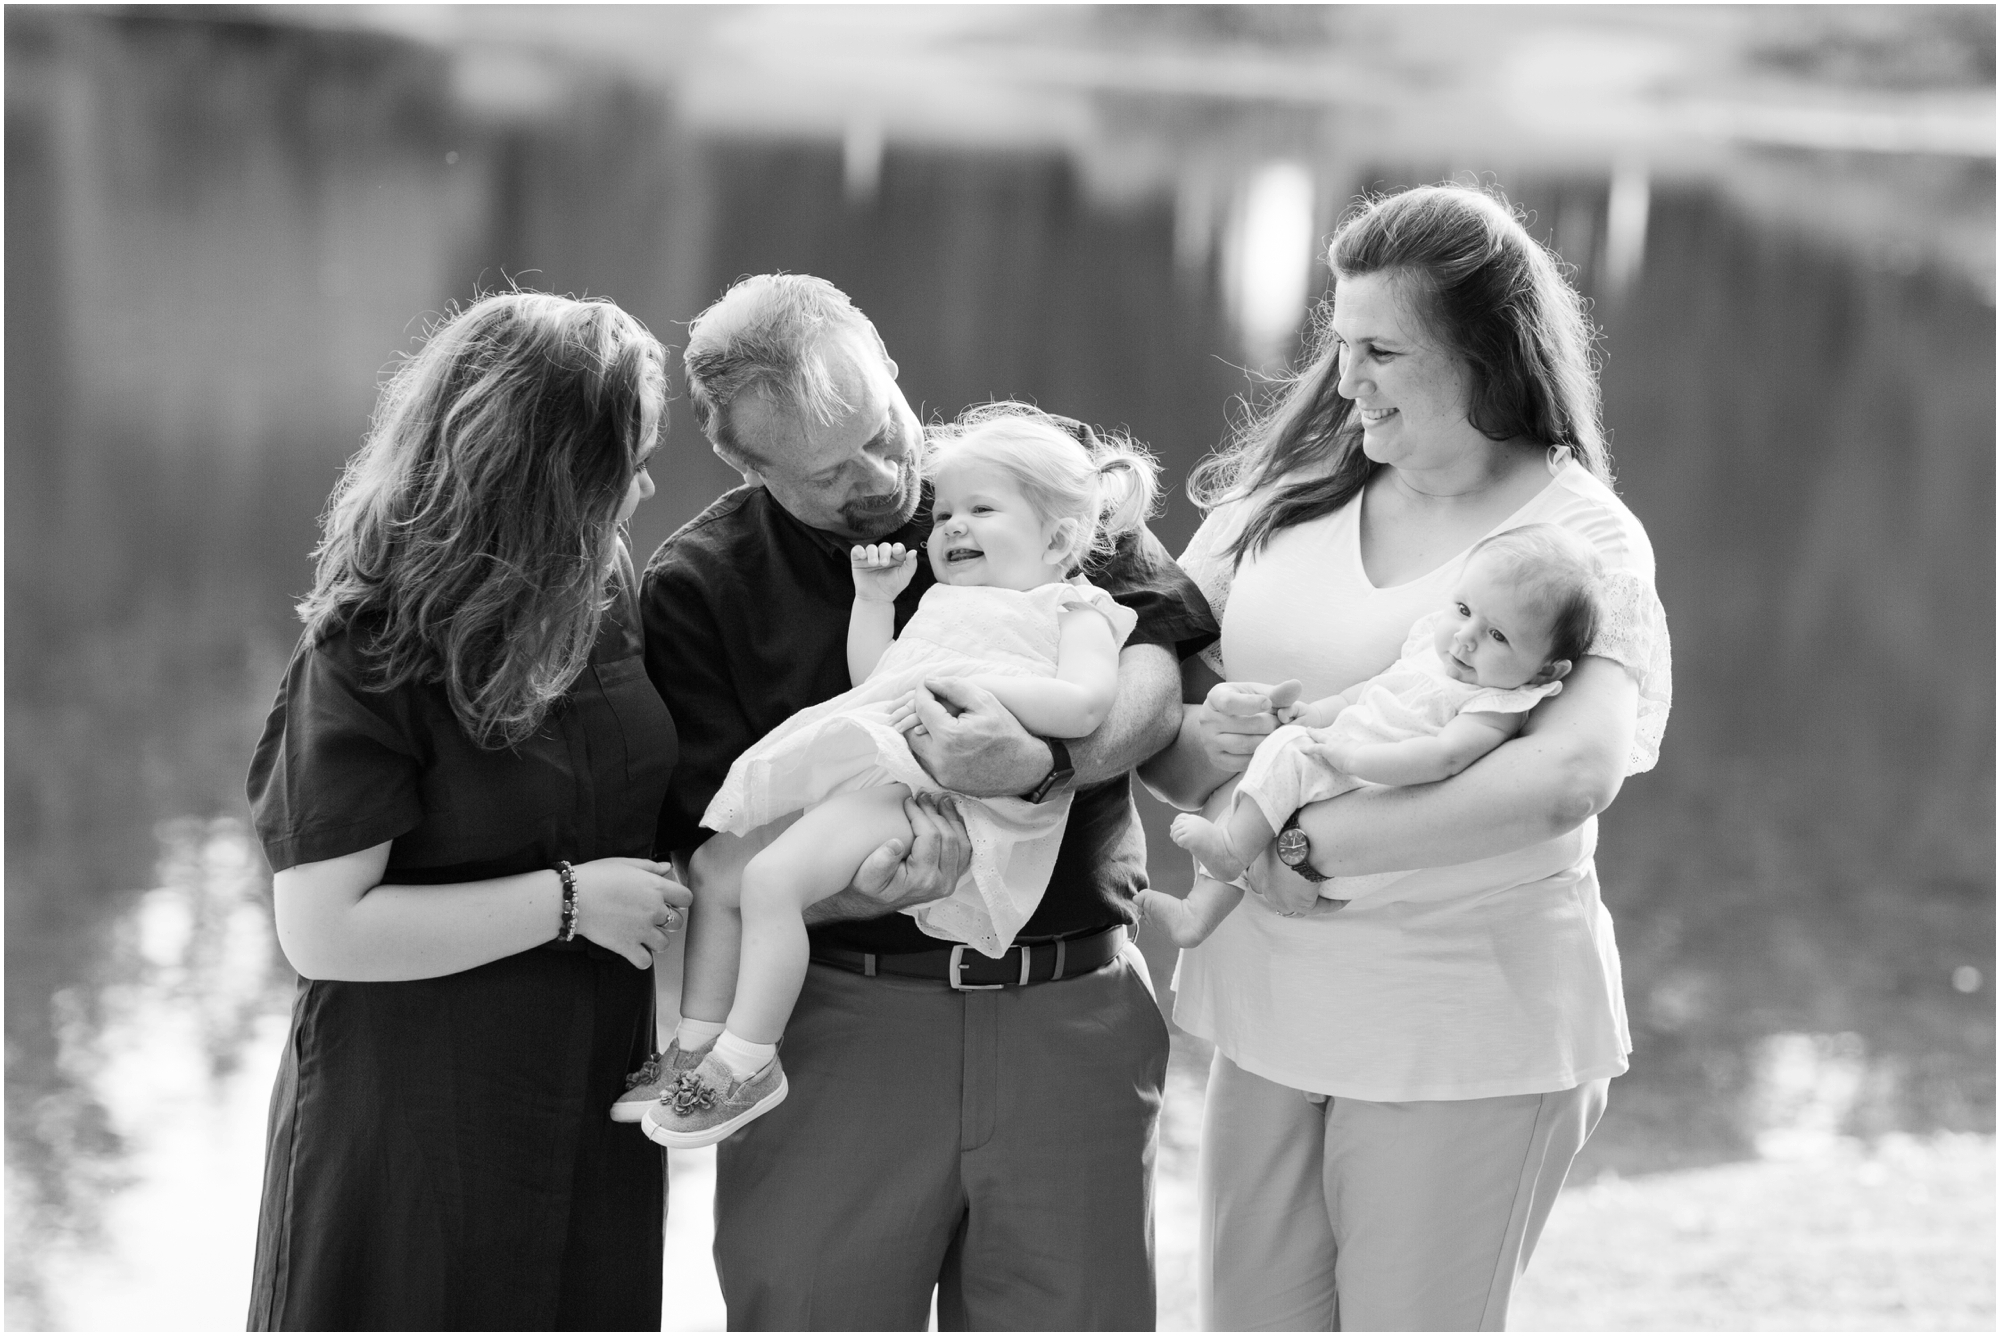 Family portraits at Bradley Lake Park in Puyallup, WA. Photos by Briana Calderon Photography based in the greater Seattle-Tacoma Area._1379.jpg